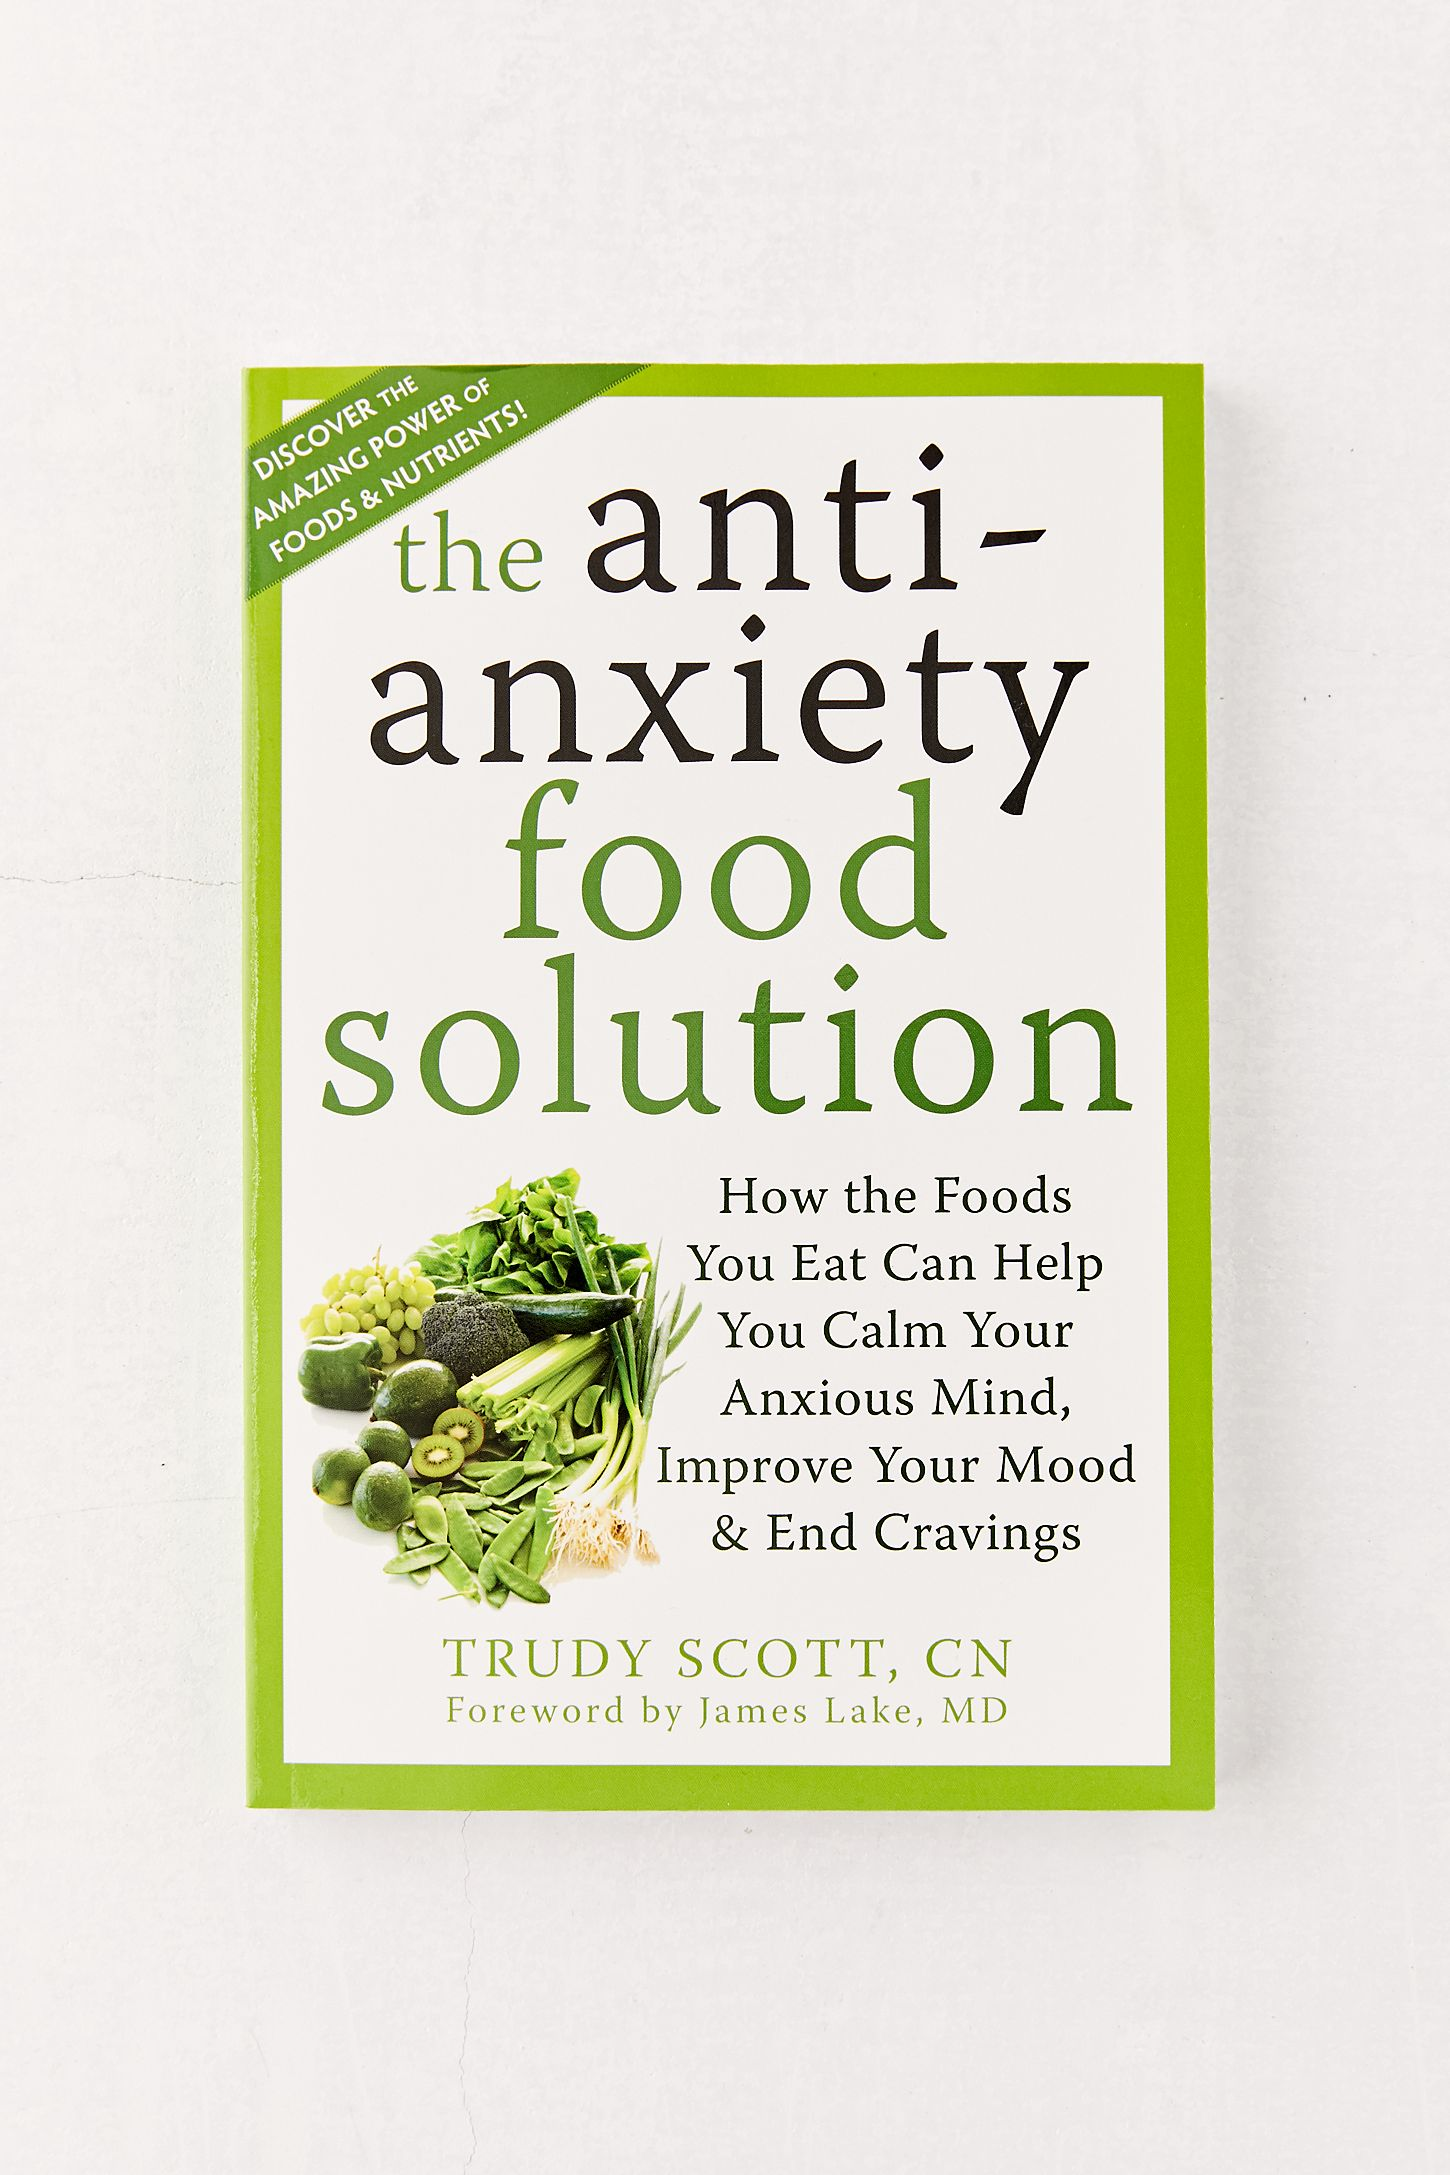 Image result for Food For Anxiety: The Anti-Anxiety Food Solution